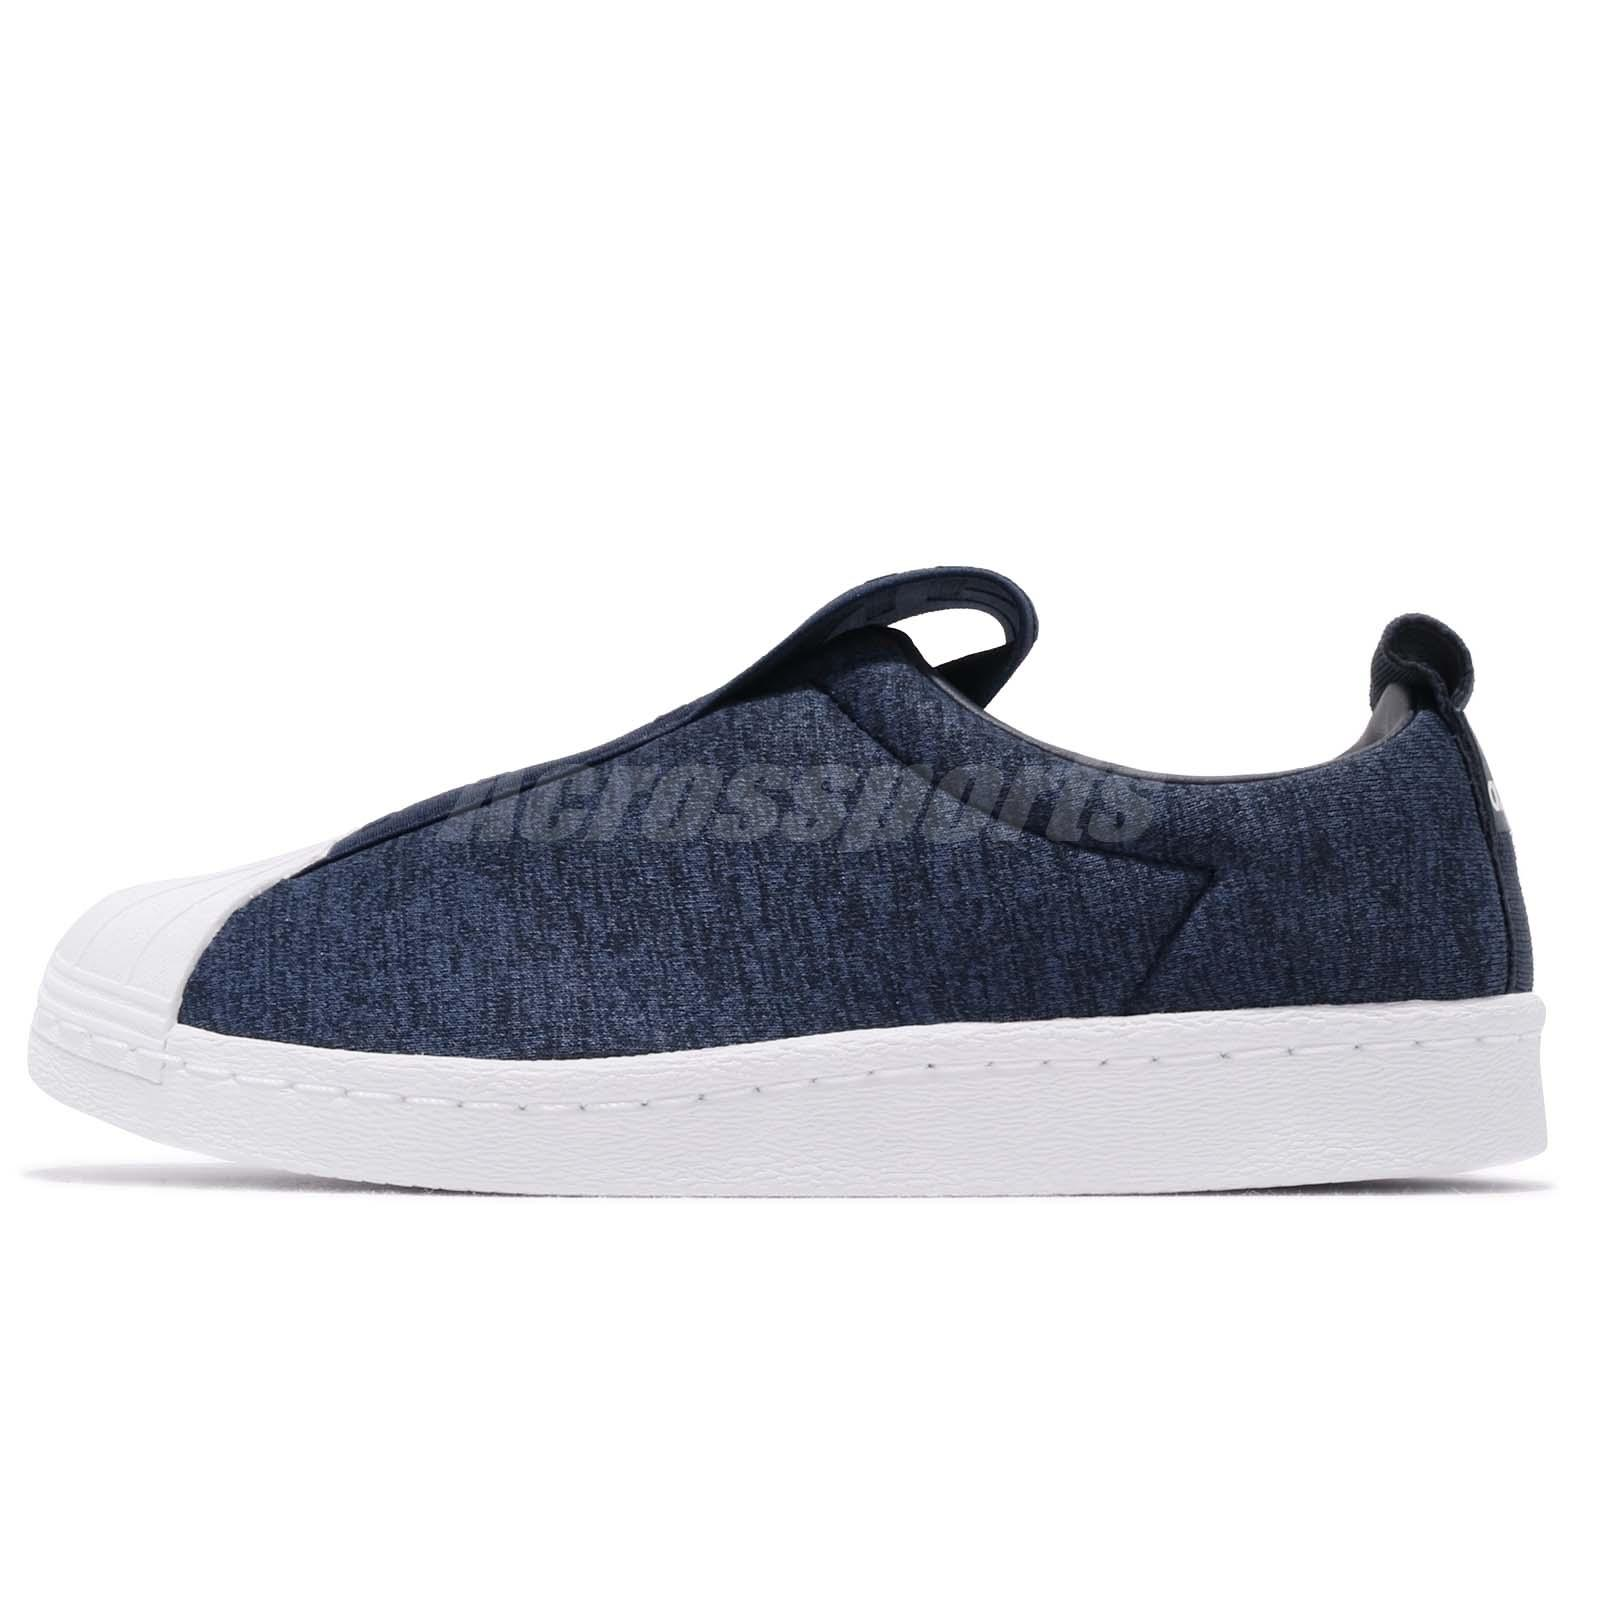 free shipping 74c8d 0736a Details about adidas Originals Superstar BW3S Slip On W Blue White Women  Casual Shoes CQ2519